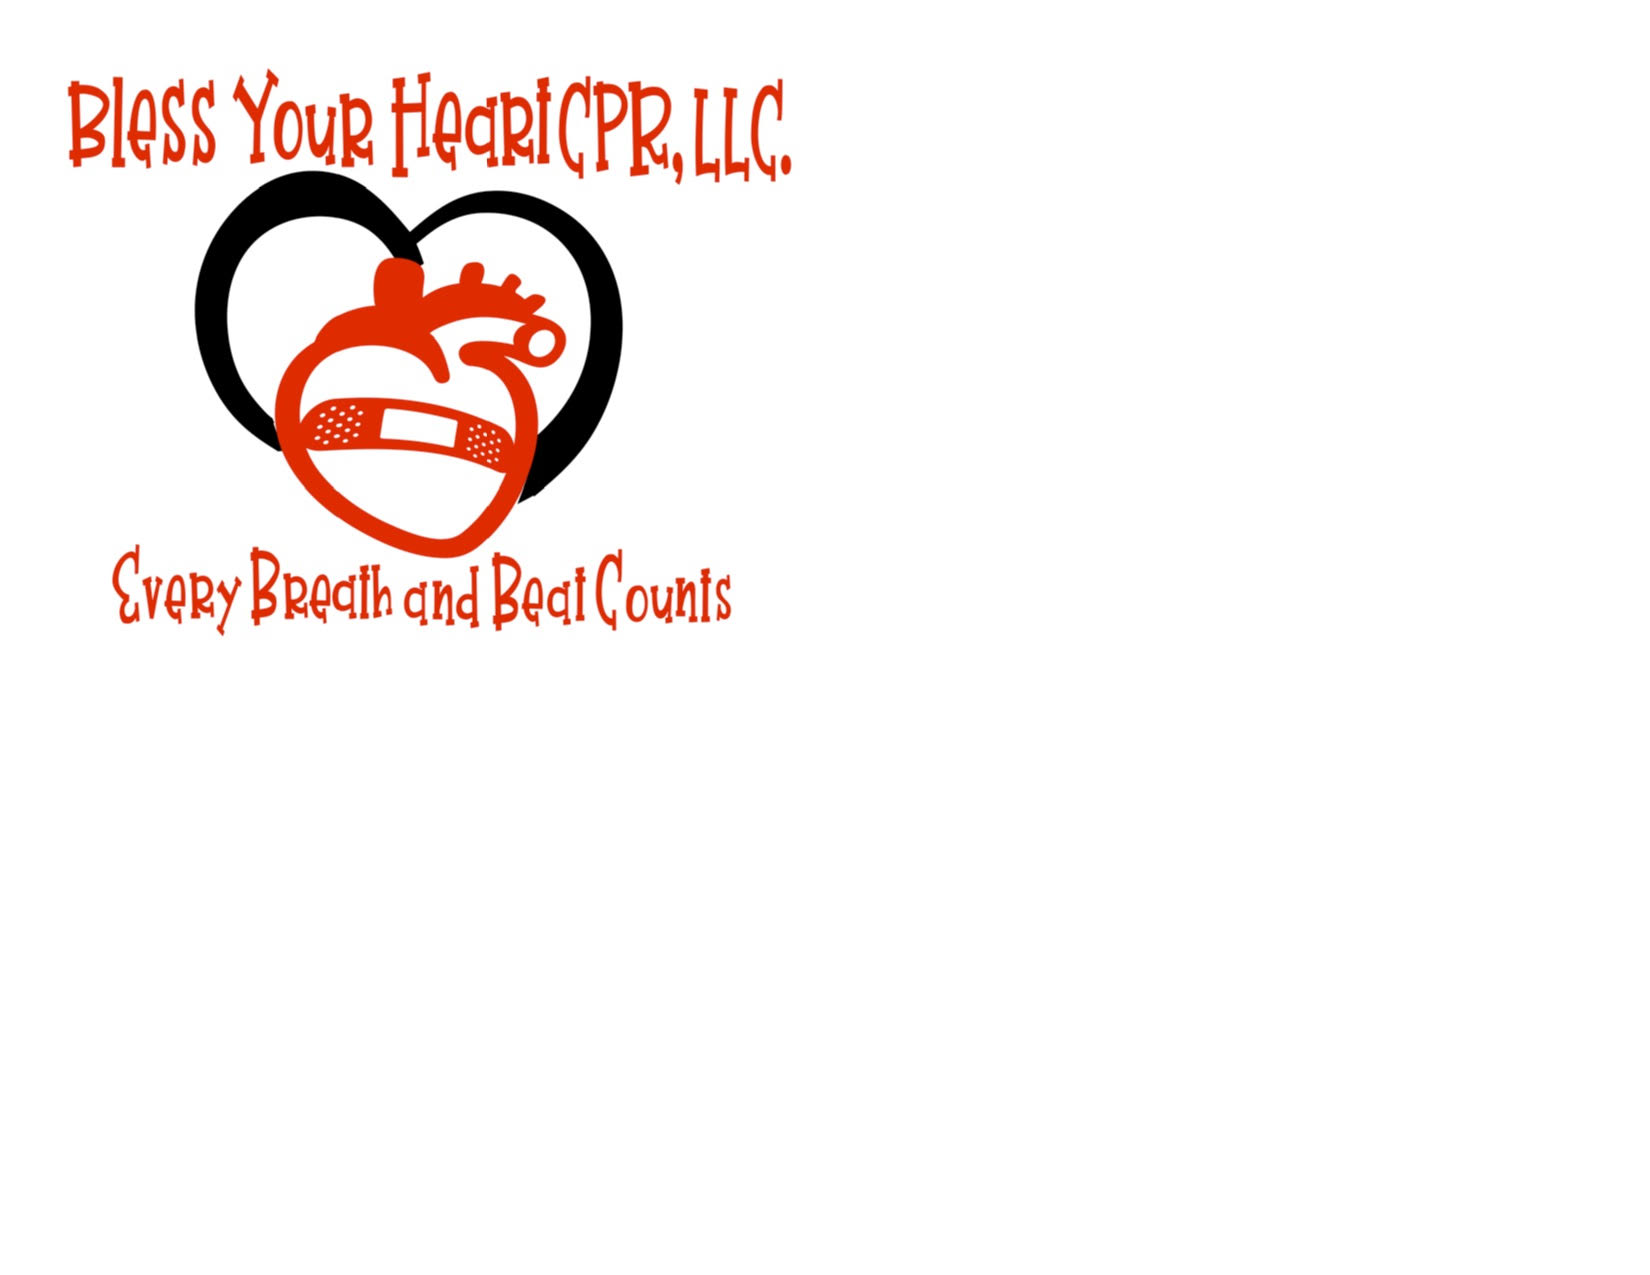 Bless Your Heart CPR LLC